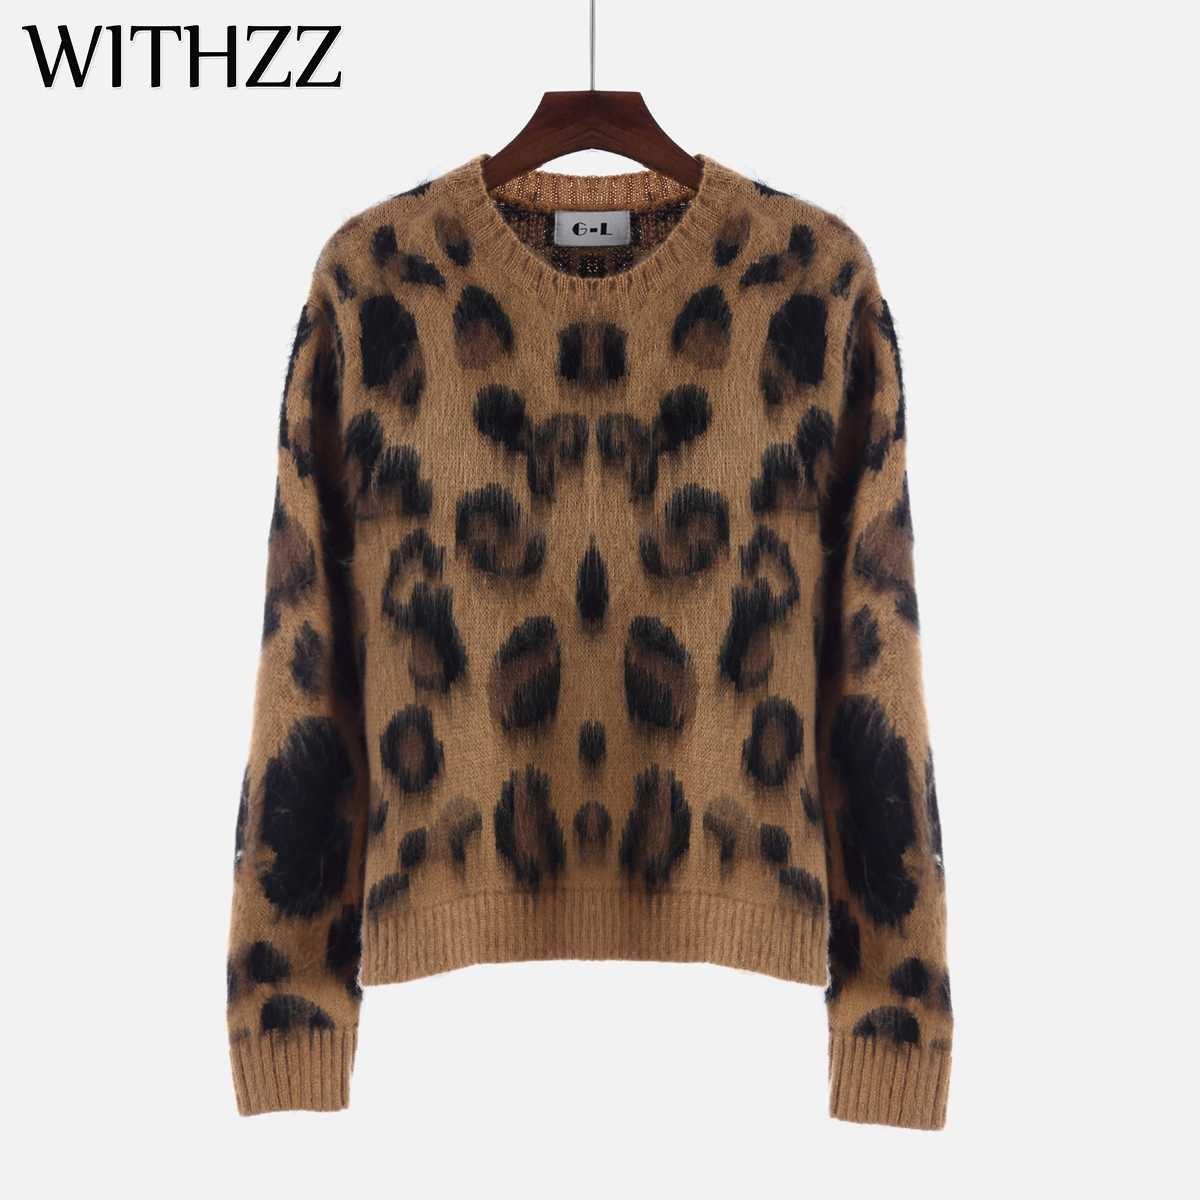 WITHZZ New Arrival Spring Autumn Elegant Casual Round Neck Leopard Print Long Sleeve Sweater Women Autumn Pullovers Sweaters